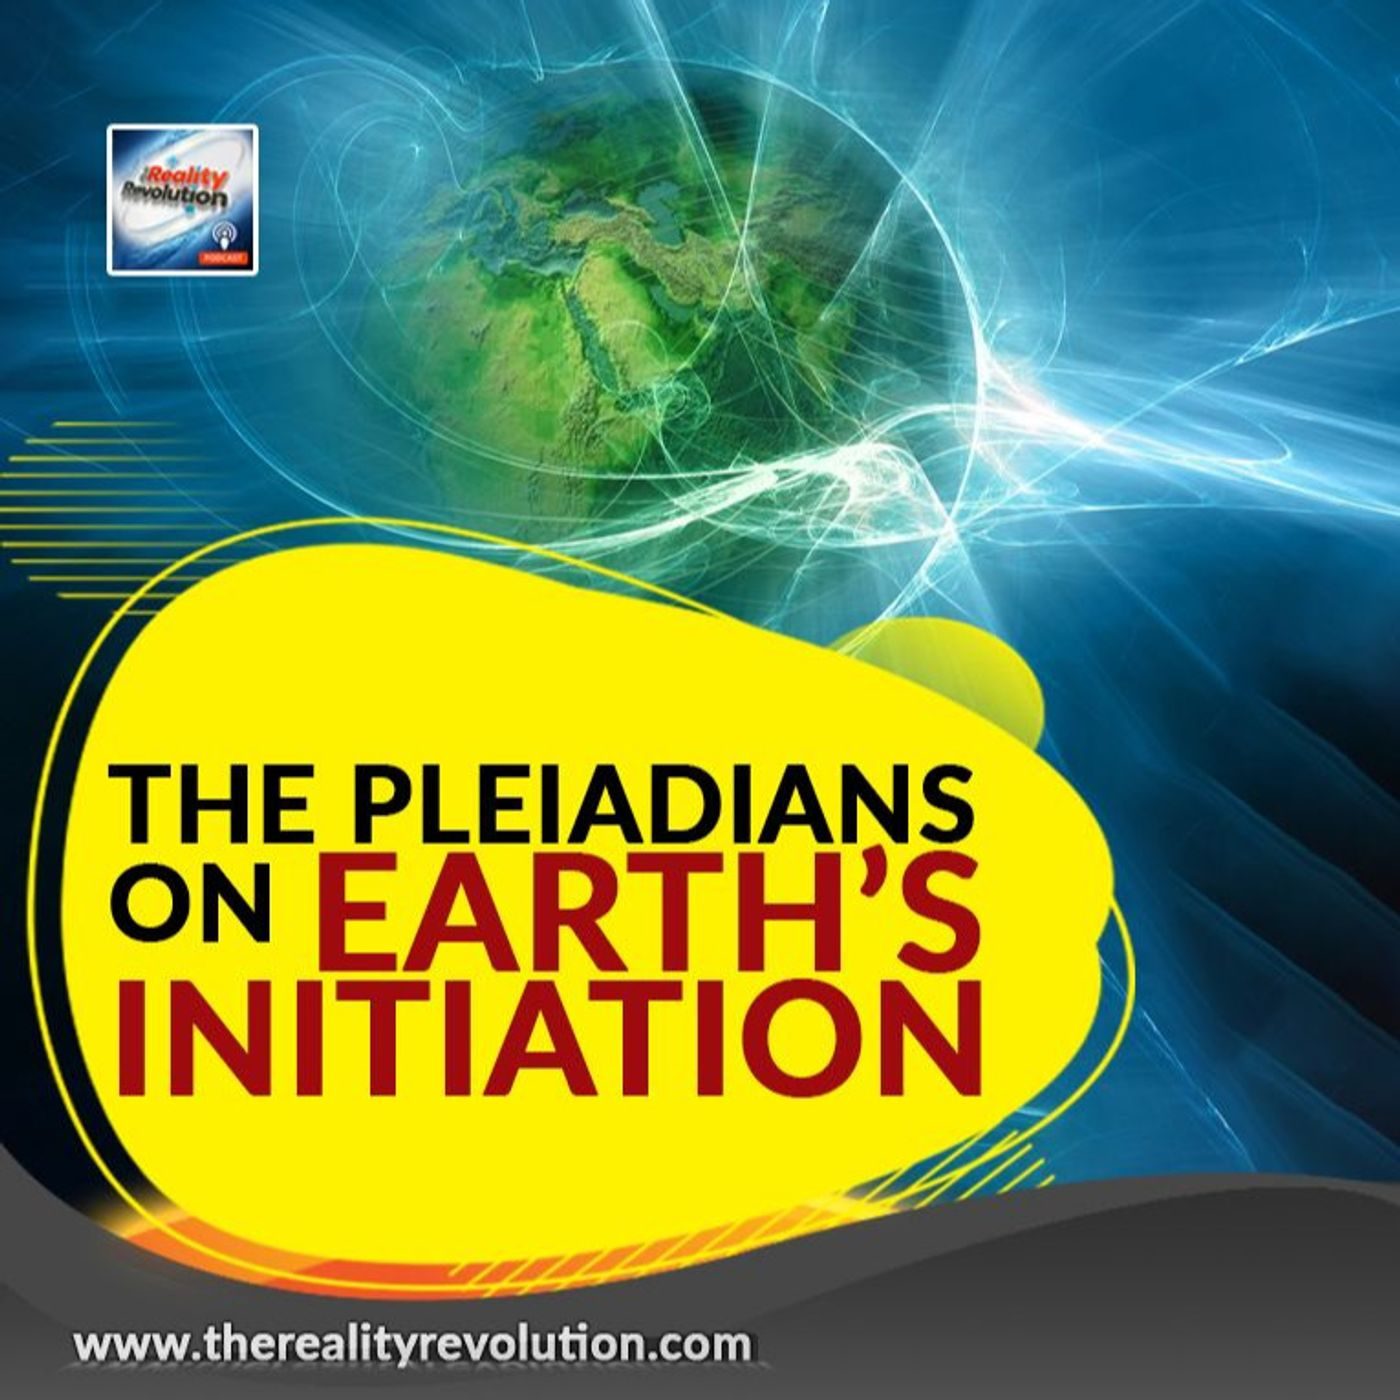 The Pleiadians On Earth's Initiation